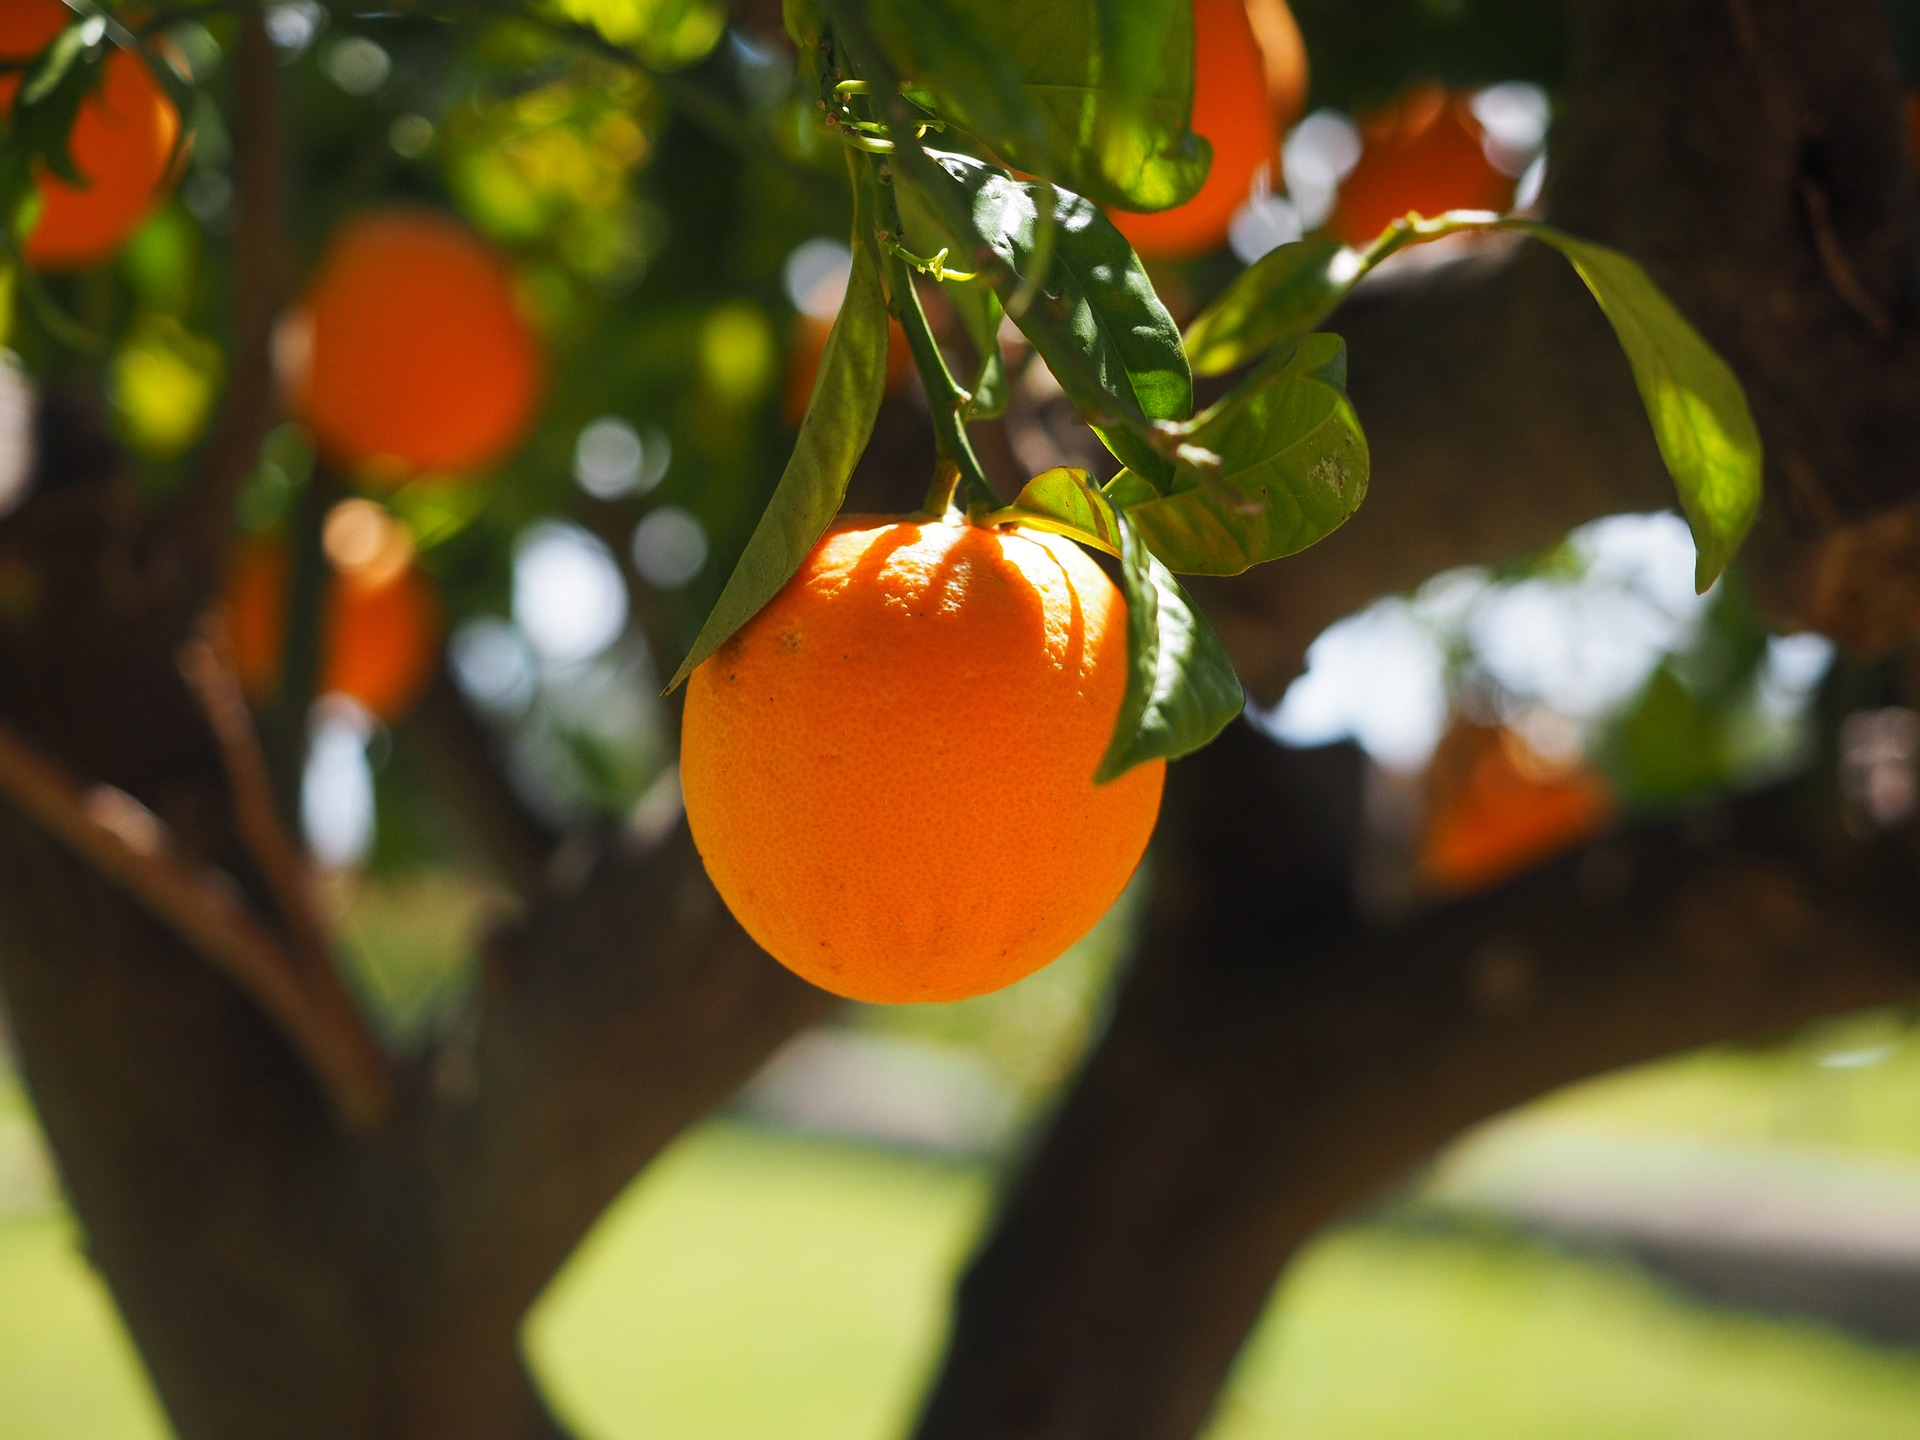 Wednesday october 14 - Walk: Discover eatable and toxic fruits